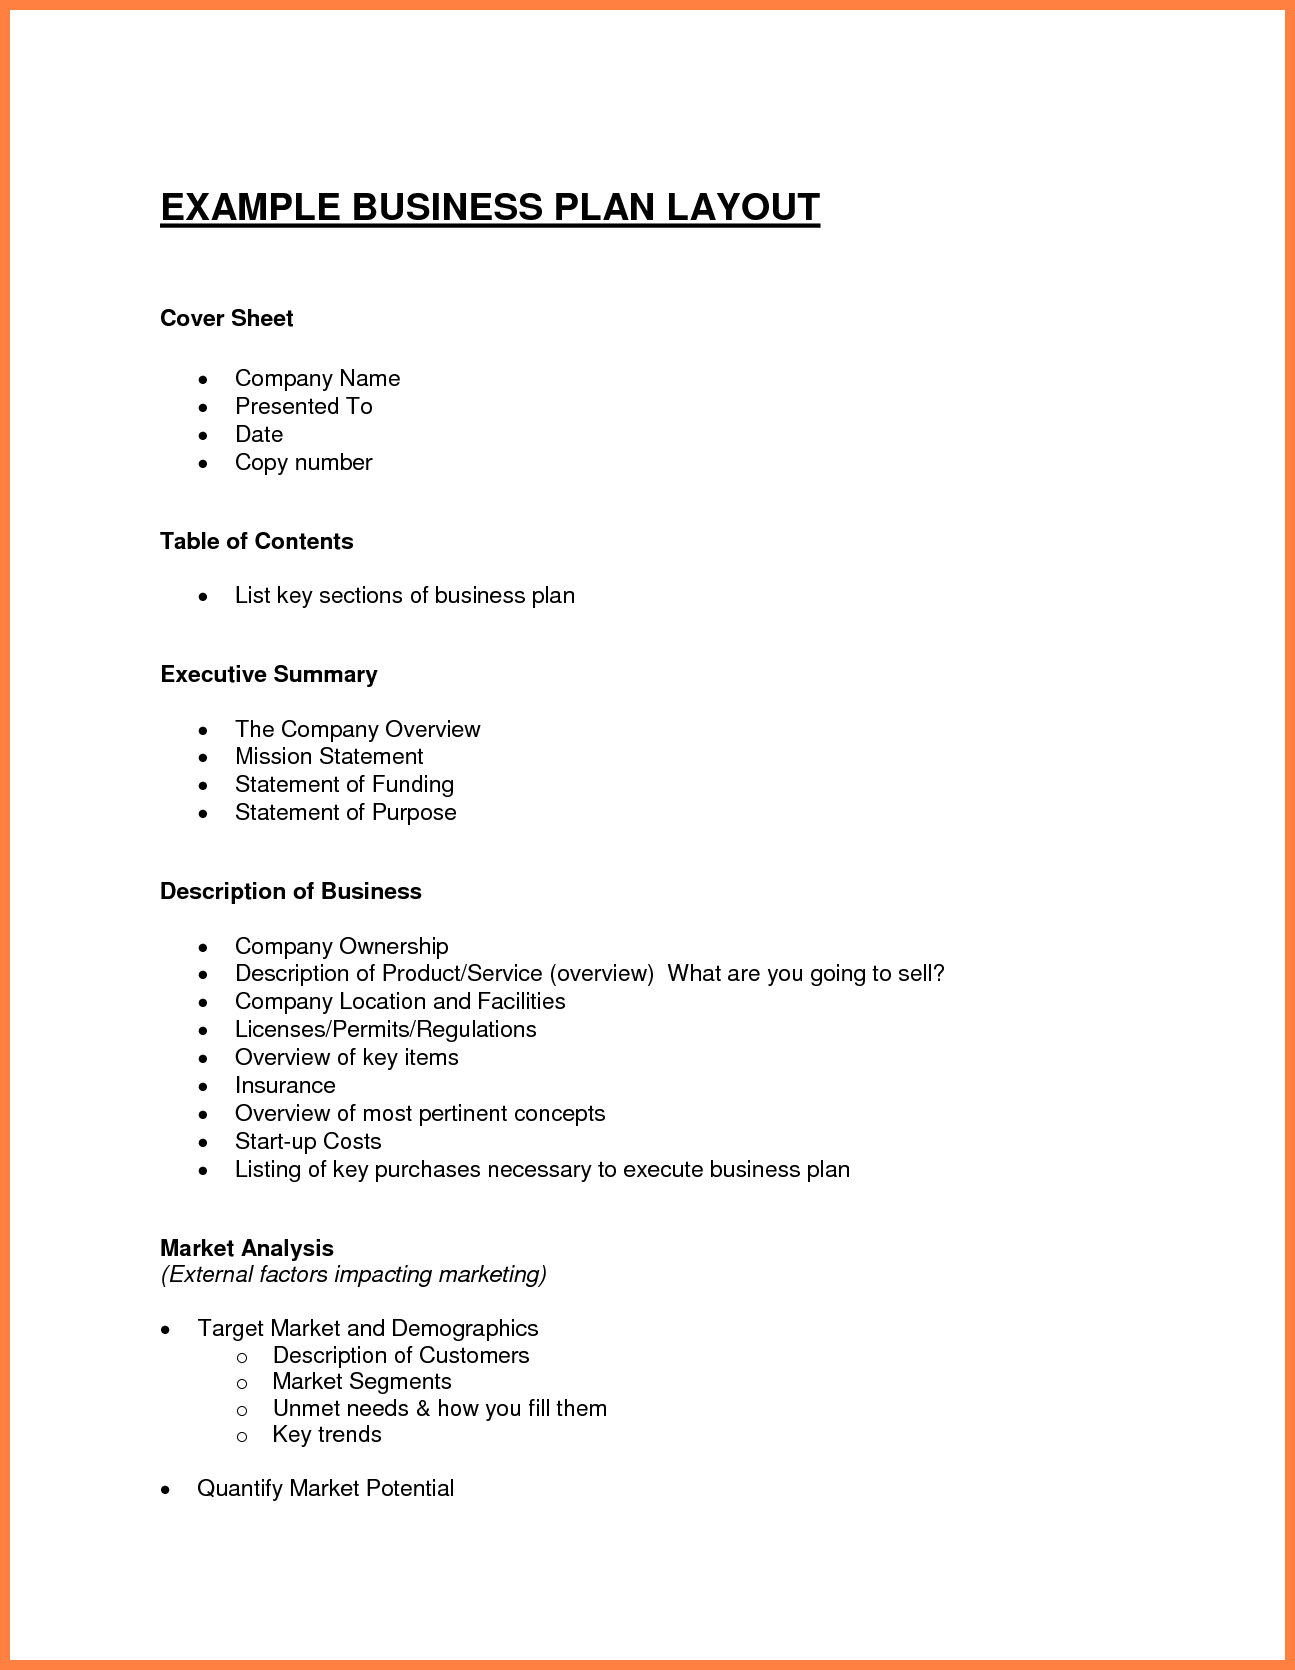 A Day Care Starter Kit Business Plan Outline Simple Business Plan Template Business Plan Template Free